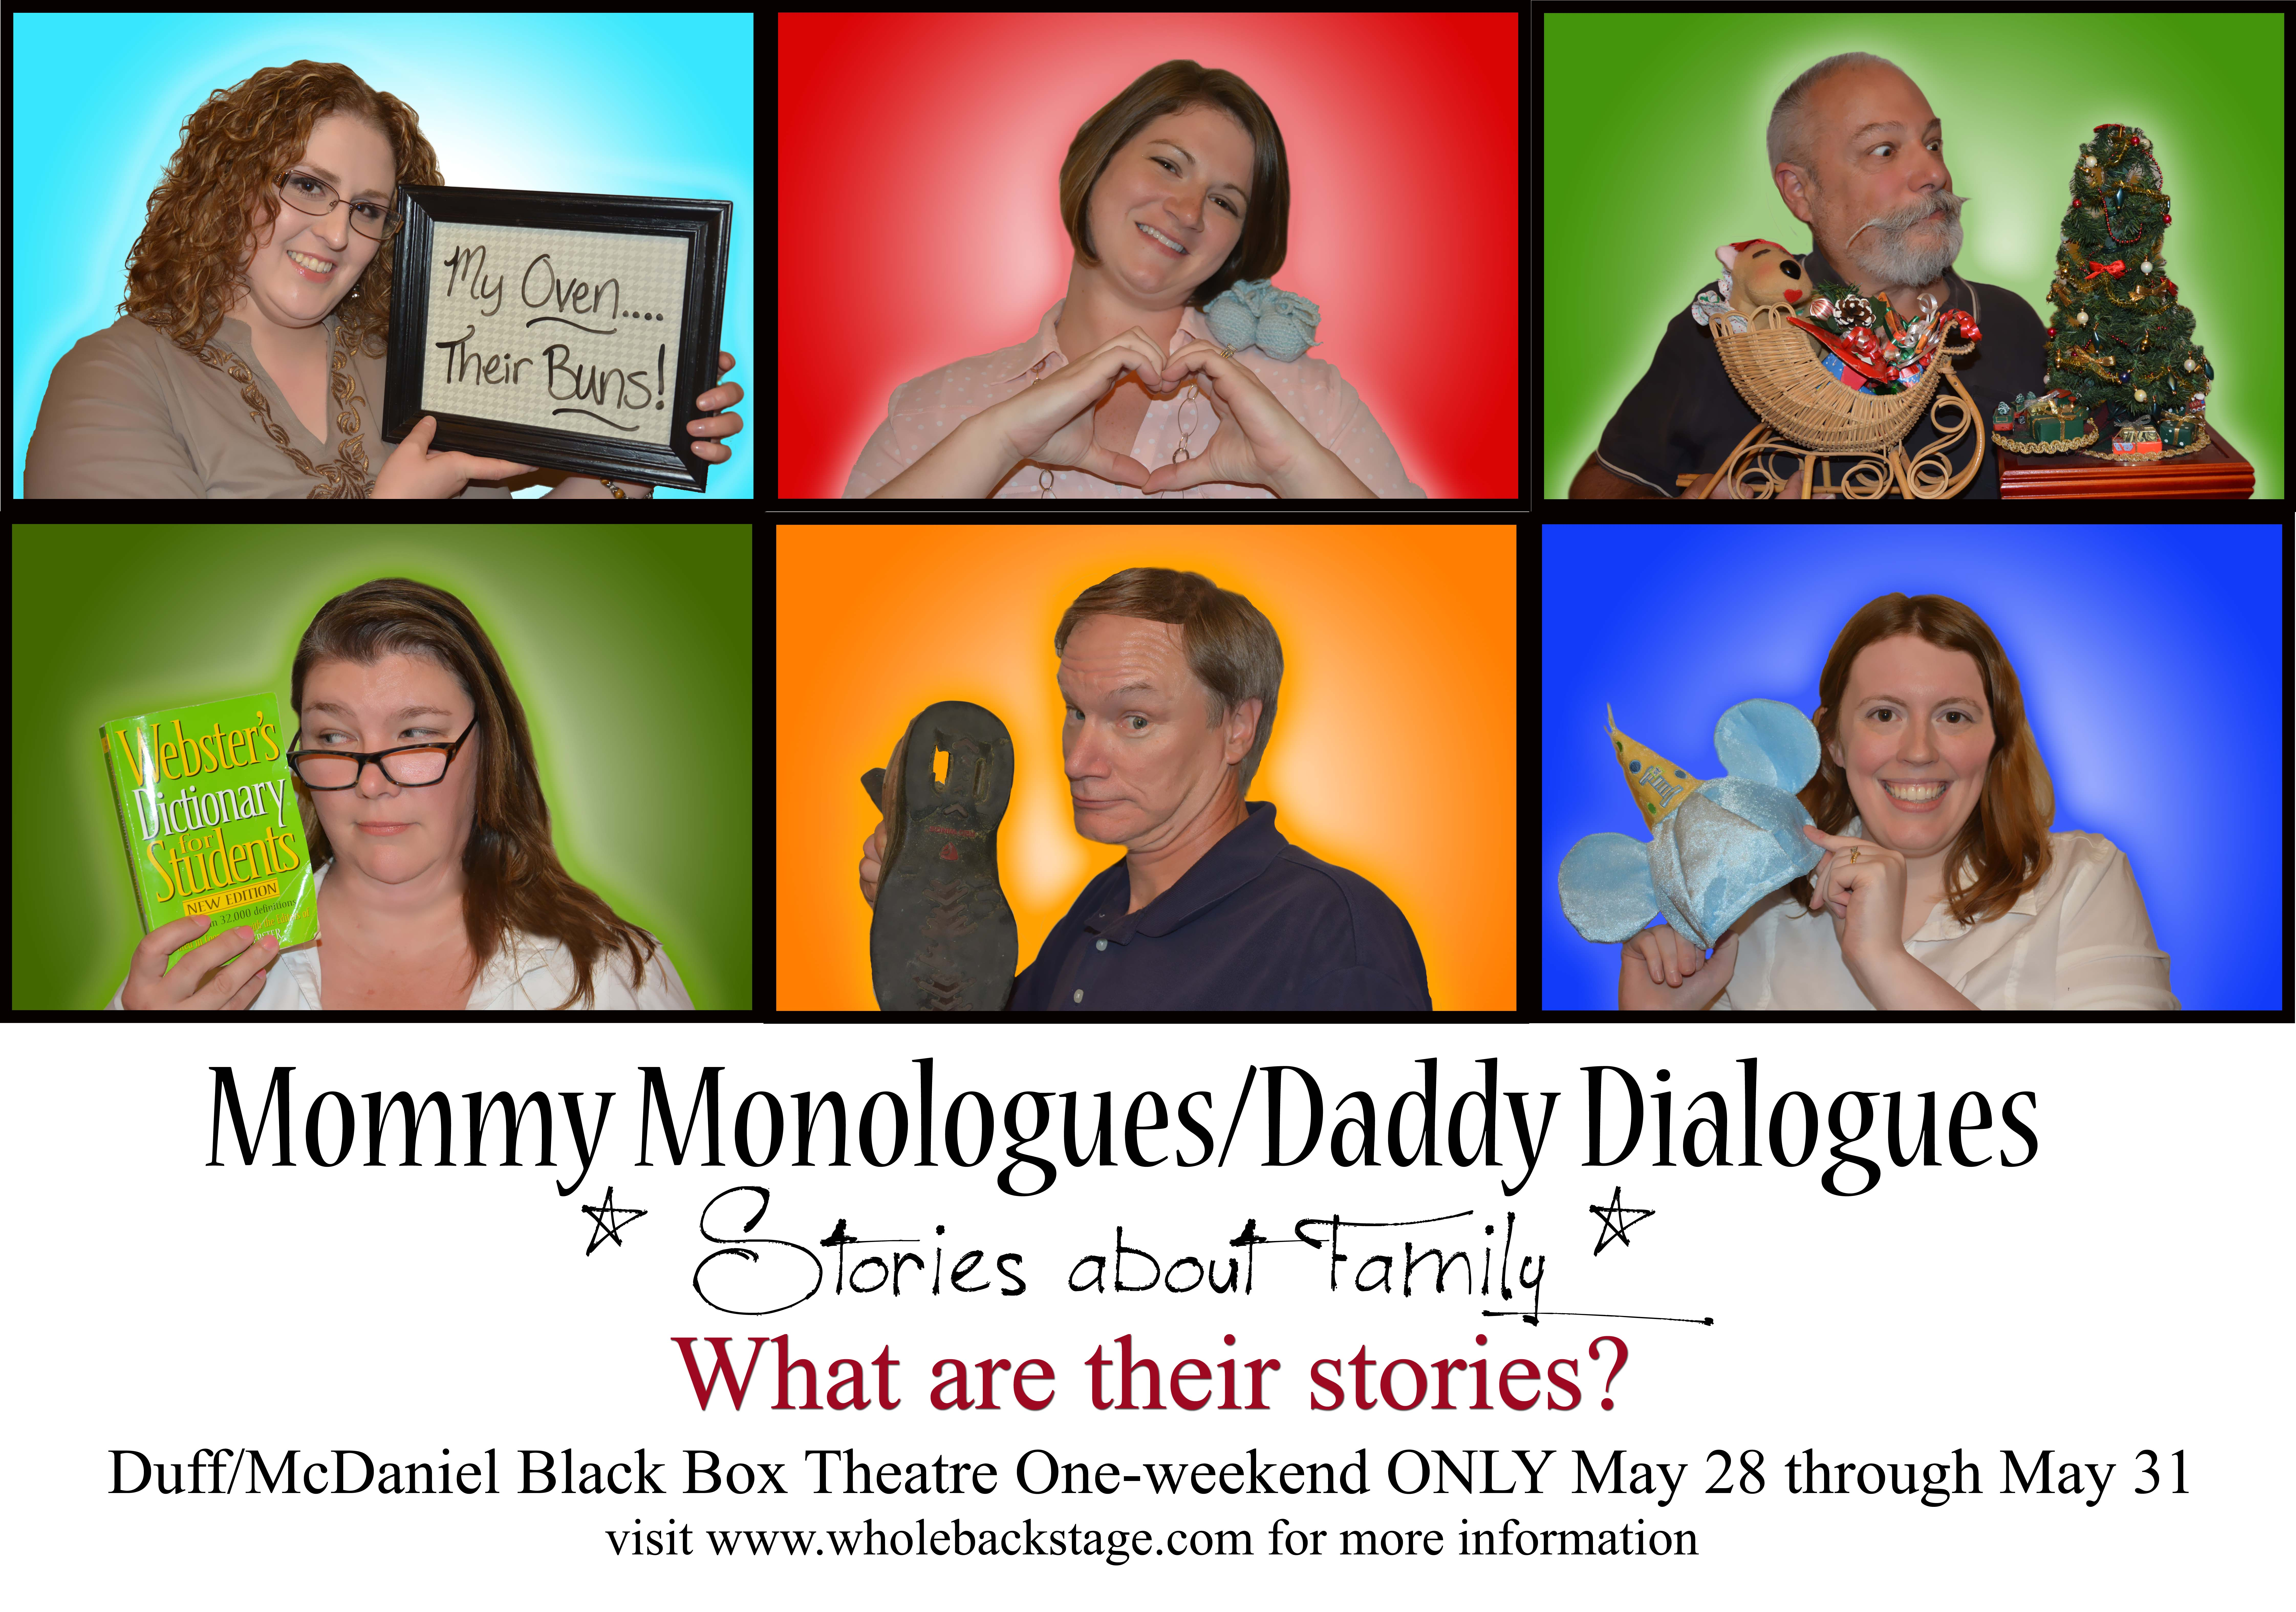 Mommy Monologues/Daddy Dialogues